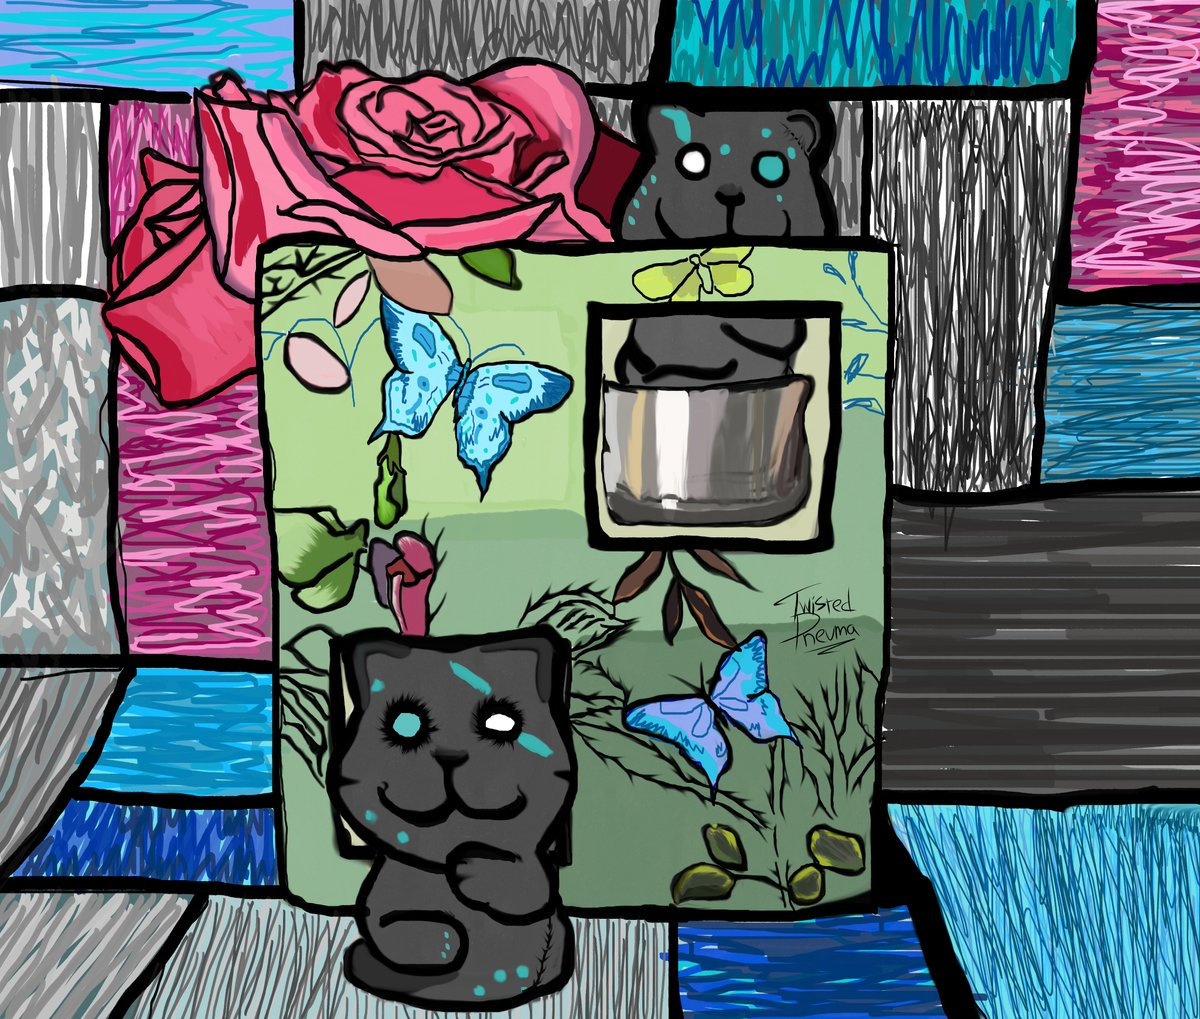 Not exactly finished this tbh, but my brain can't take no more right now haha  #Digitalart #Cats #Roses #Butterfly https://t.co/eT8W7KccgL